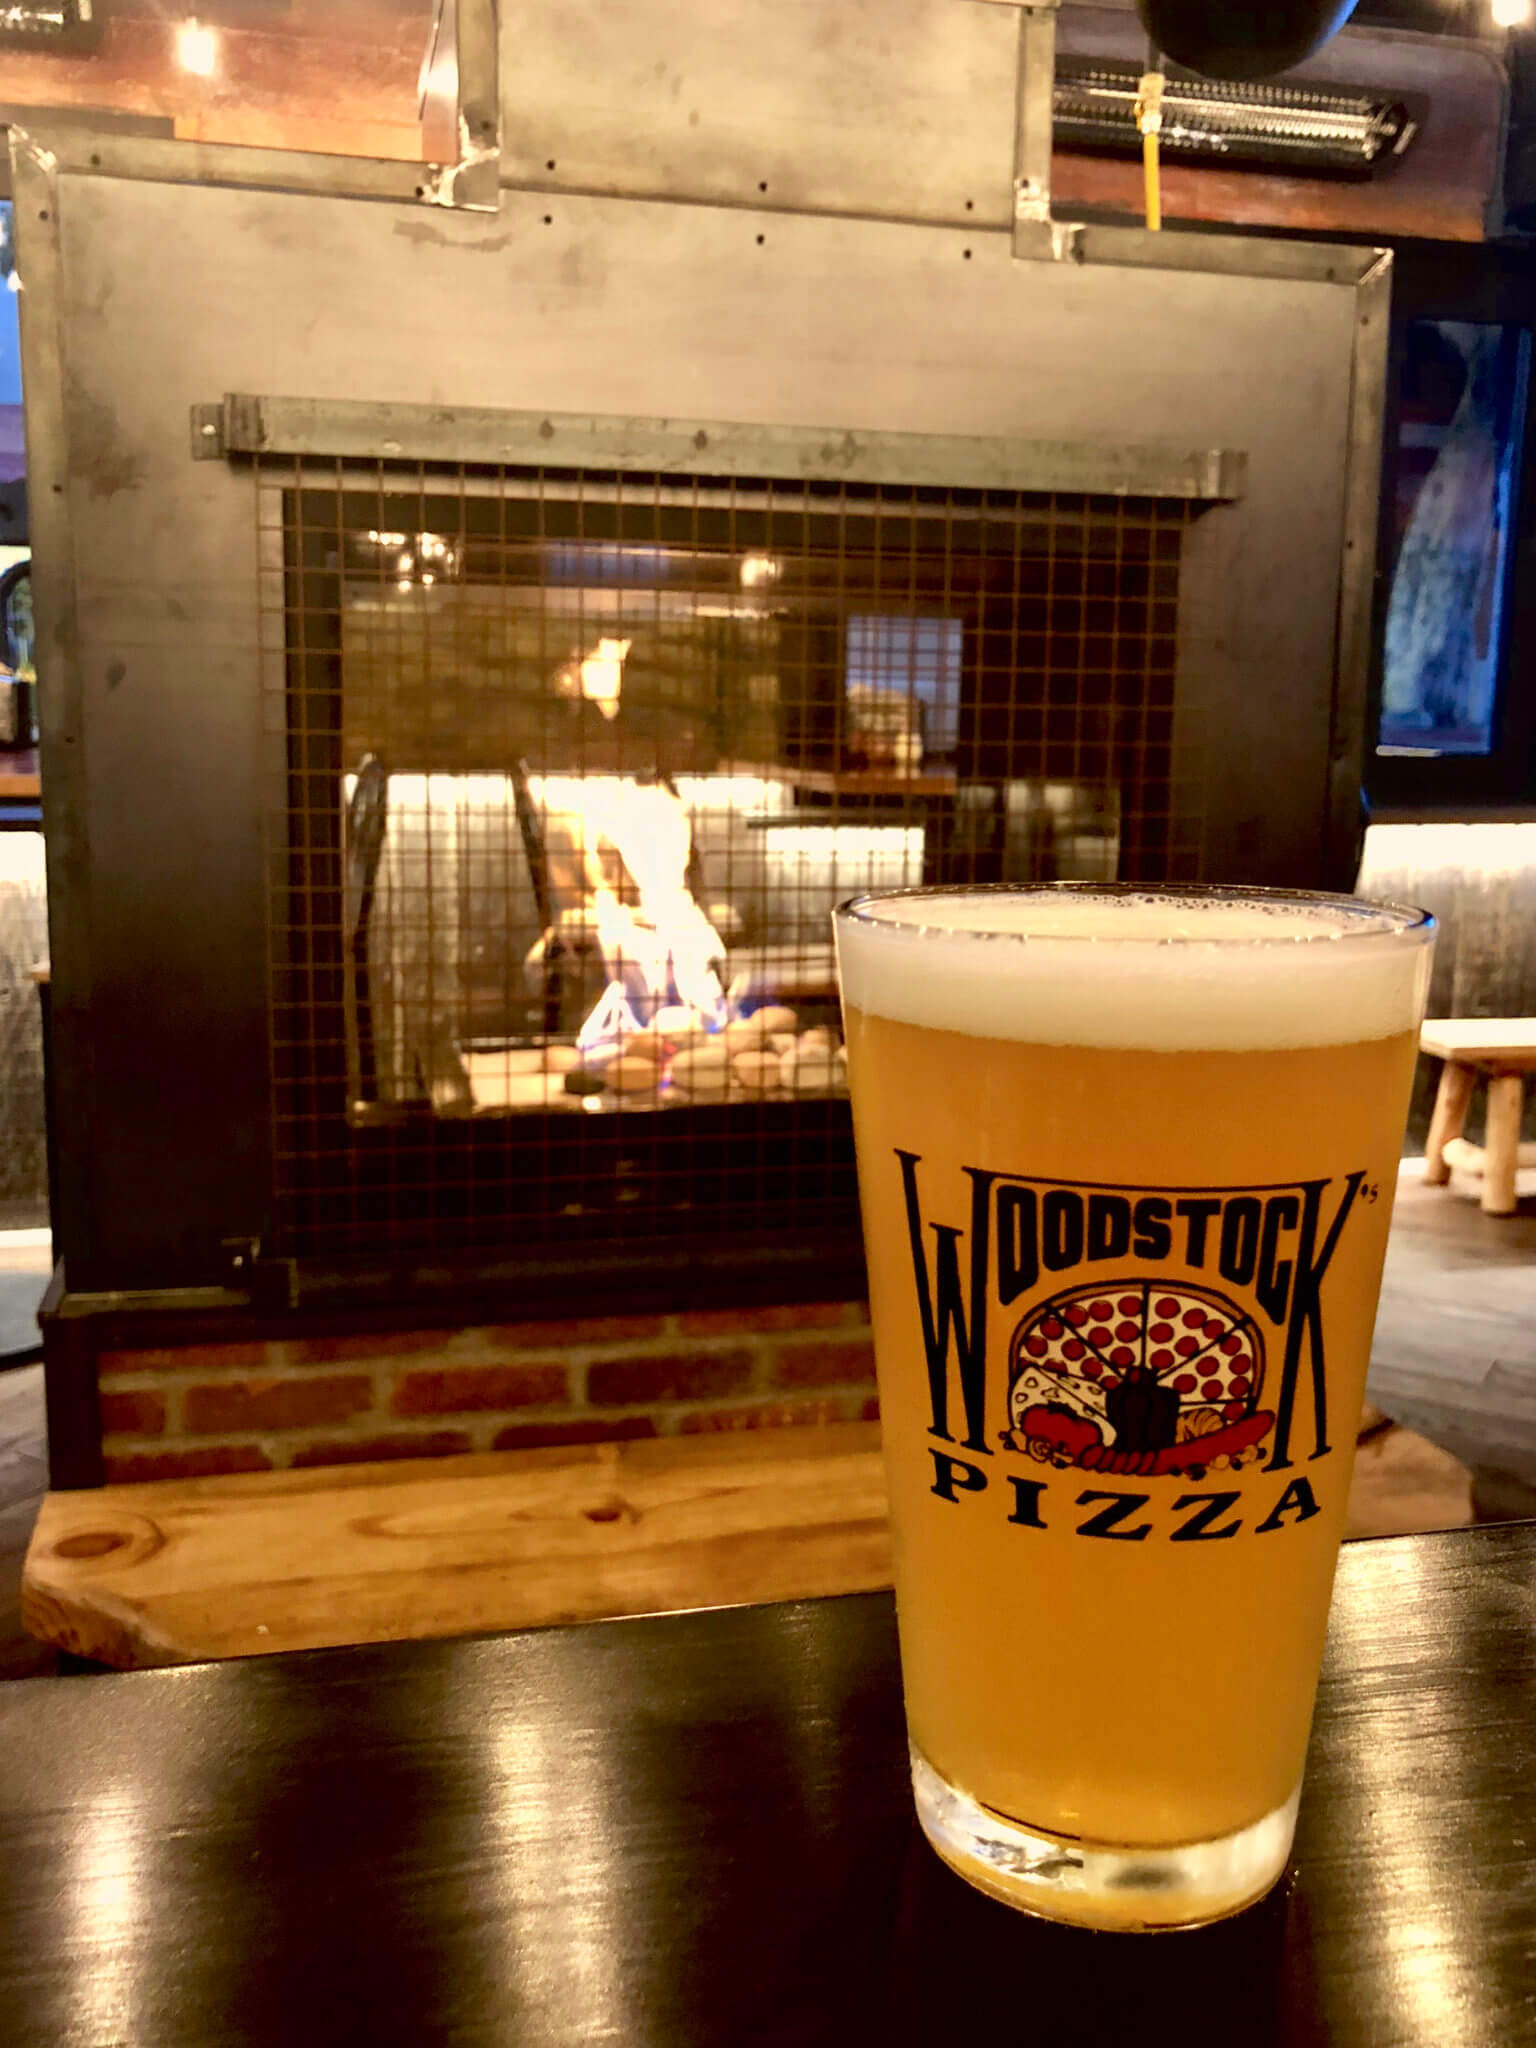 Woodstock's Pizza SLO Pint Night